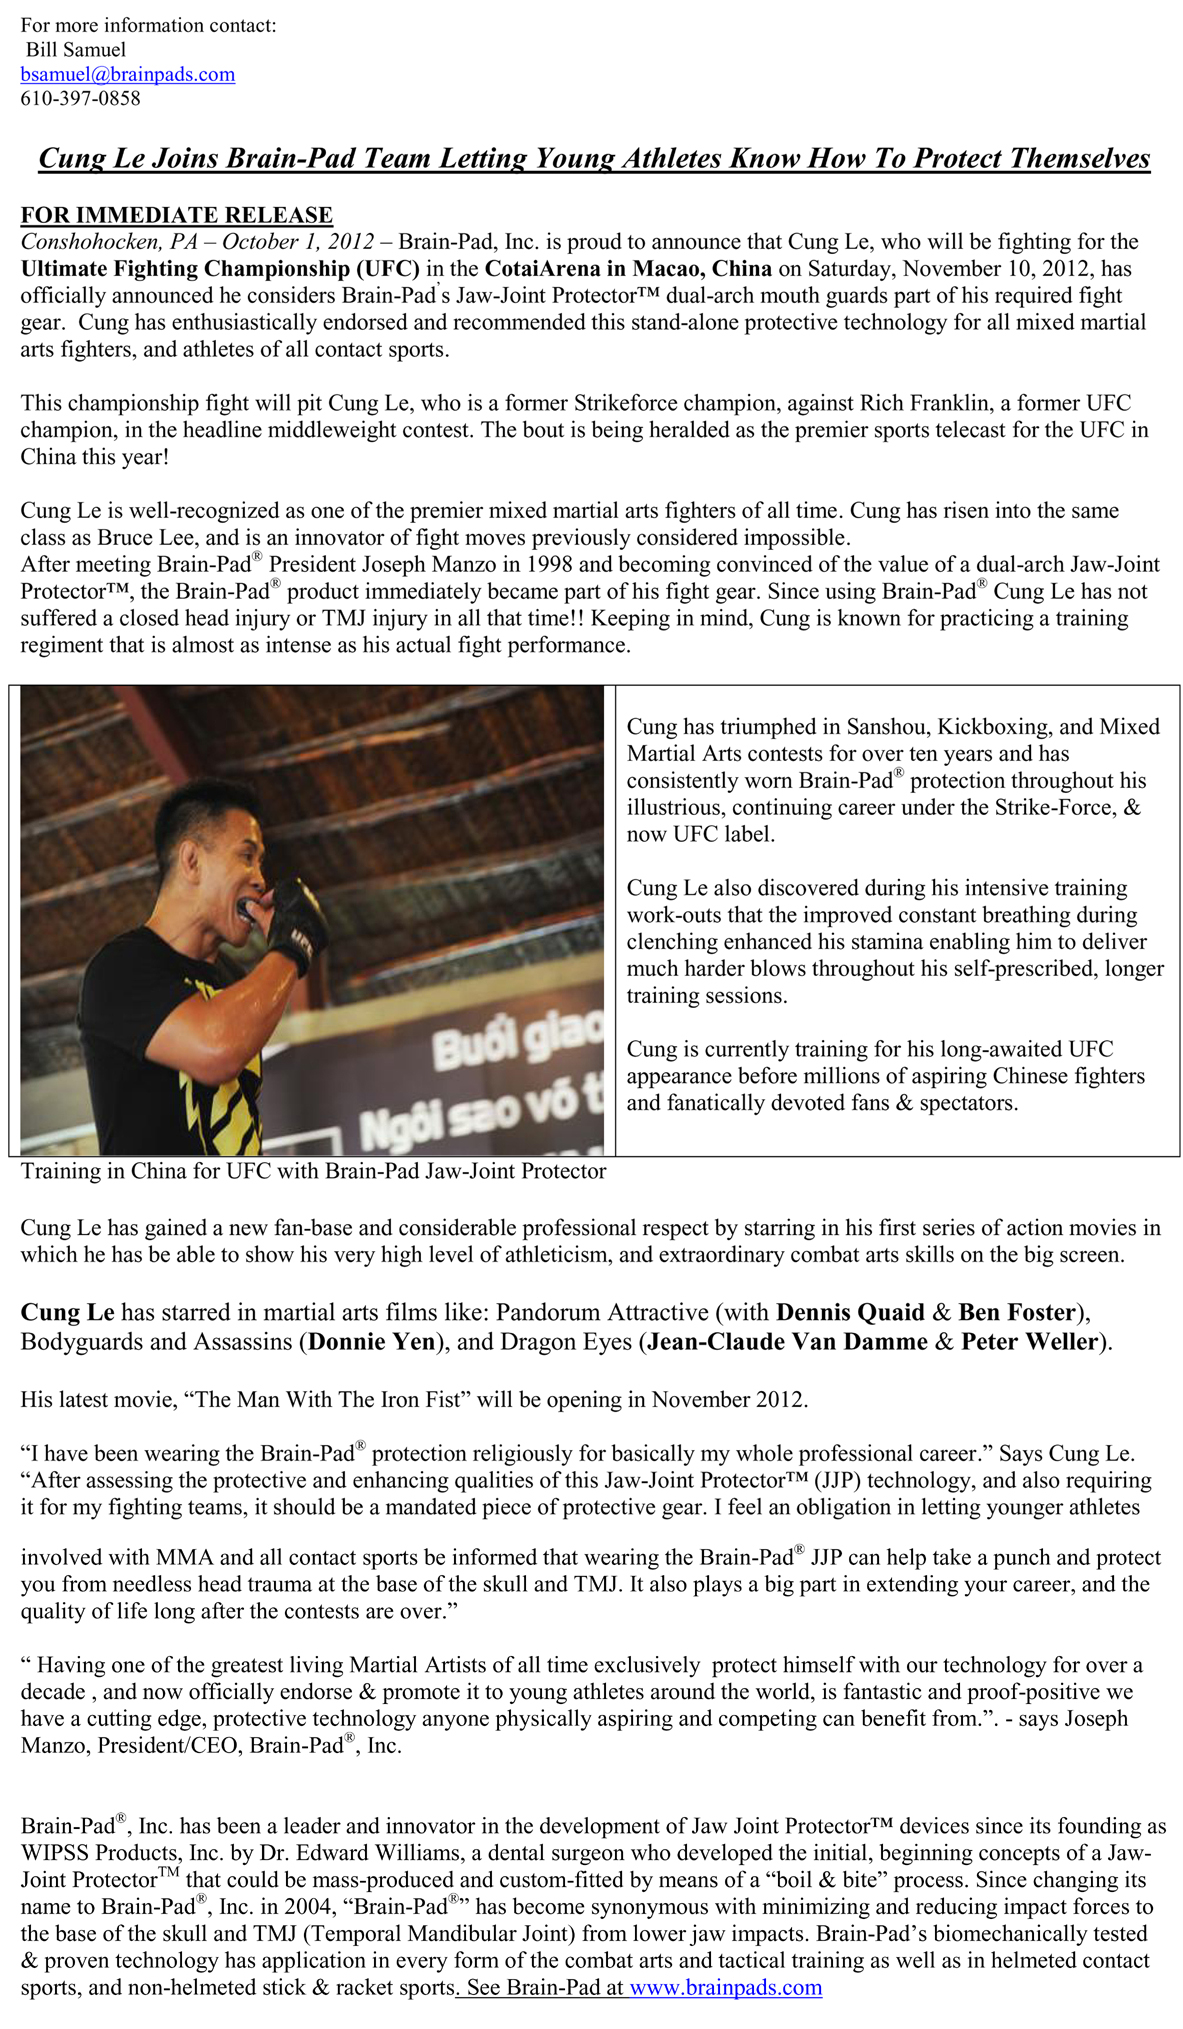 http://blog.brainpads.com/wp-content/uploads/2012/10/CungLe-Brain-Pad-Press-Release-Offical-Endorsement_10-121.jpg